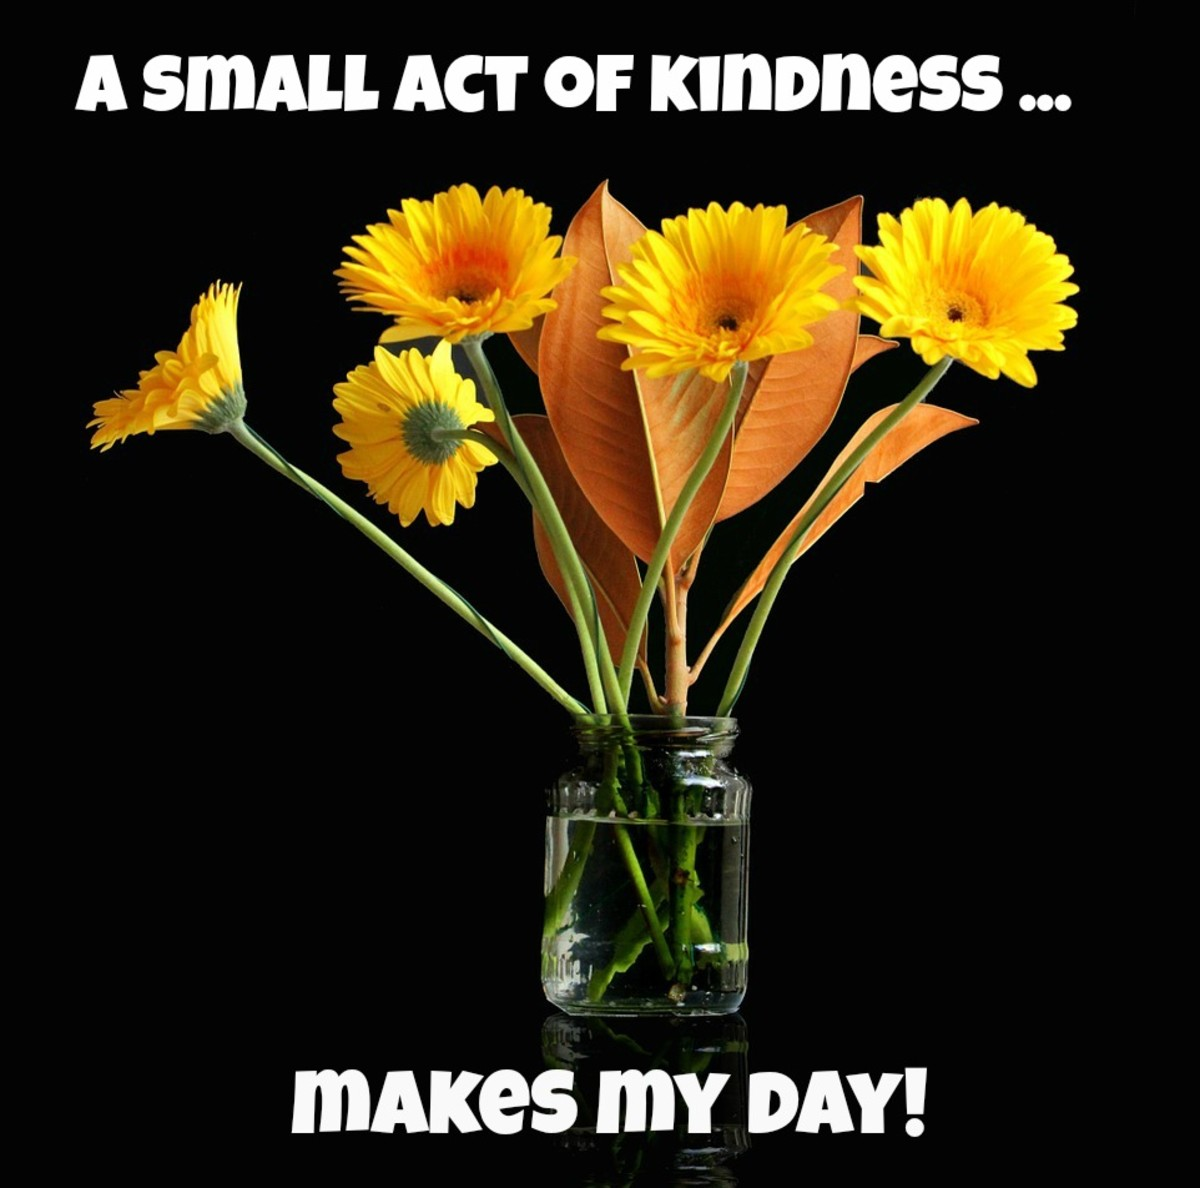 Make My Day: Quotes on Kindness by Famous People